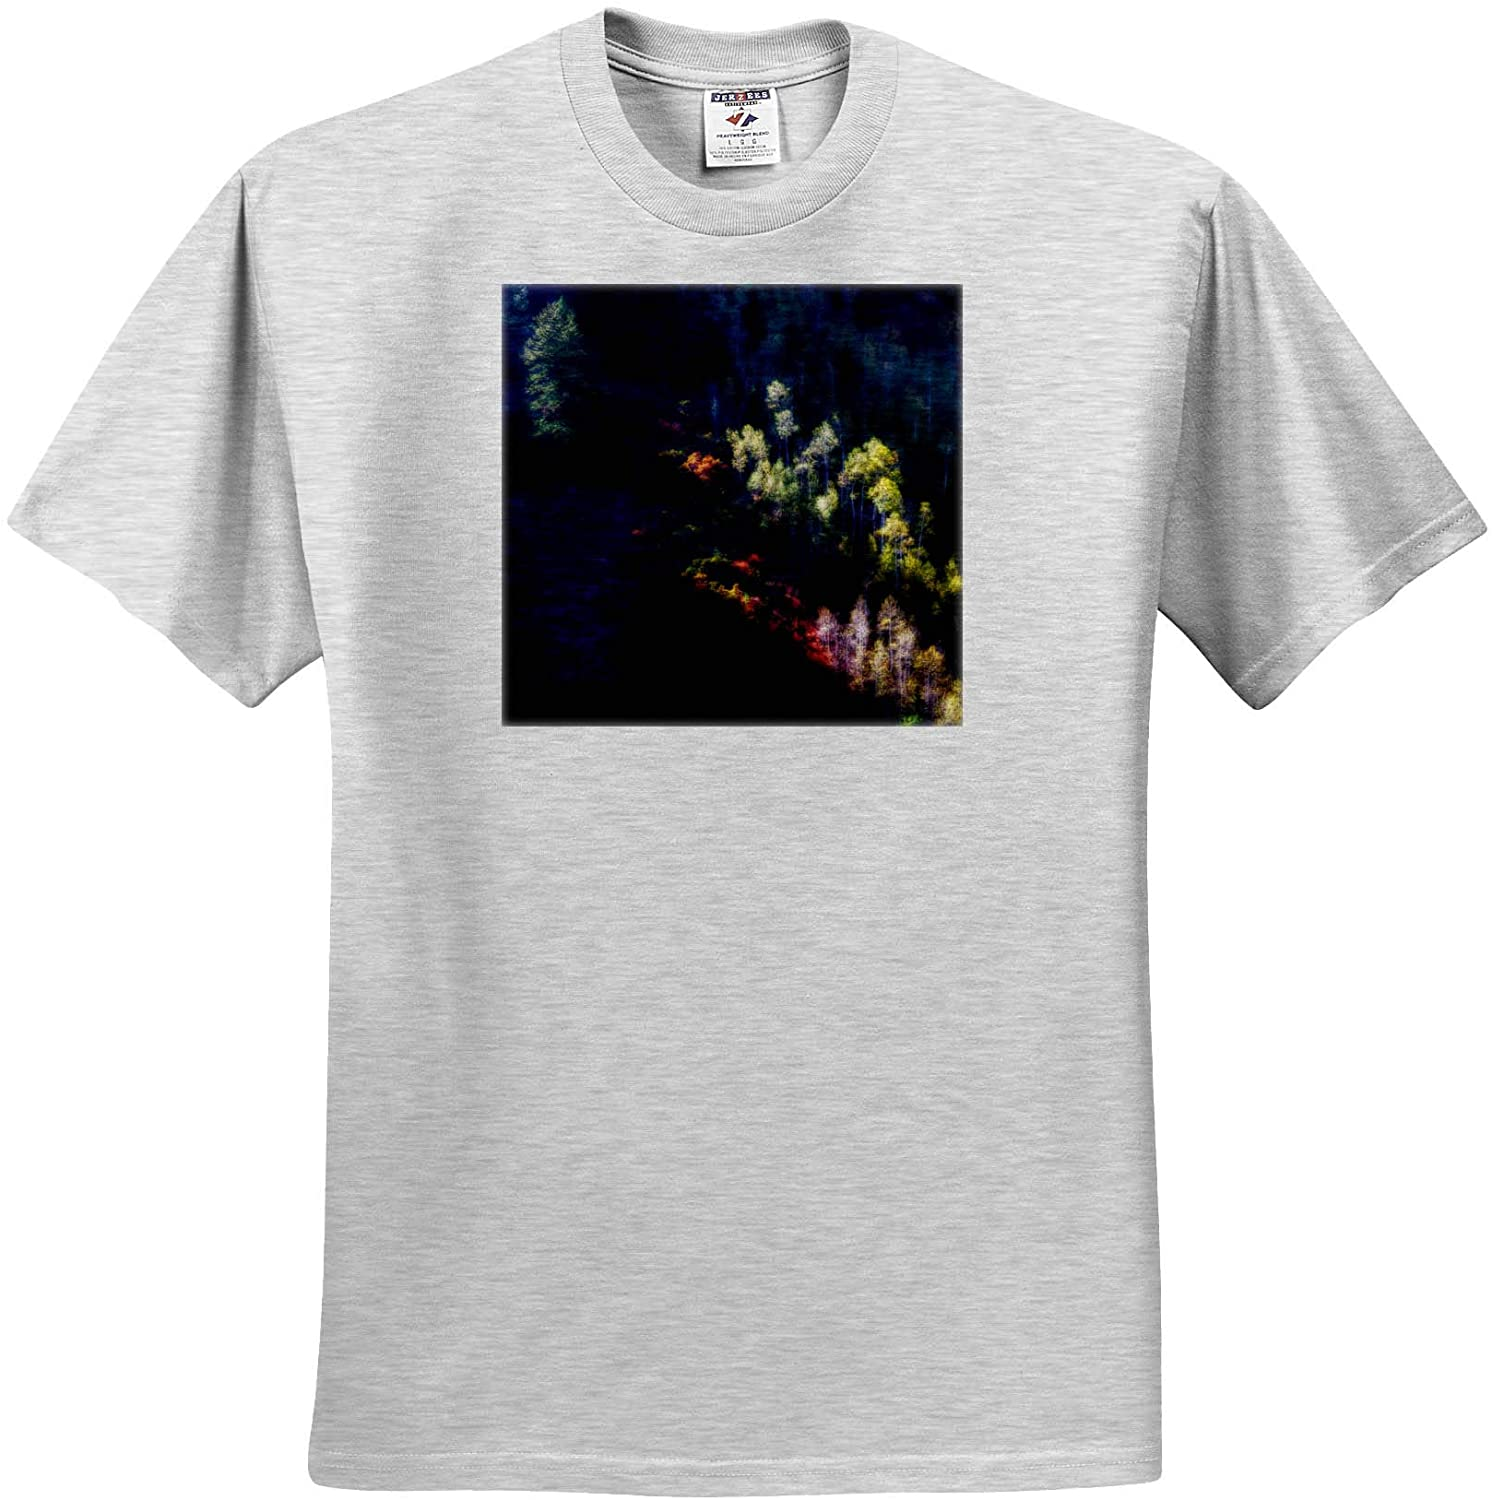 3dRose Mike Swindle Photography - Landscapes - Trees Highlighted by The Setting Sun - Youth Birch-Gray-T-Shirt Small(6-8) (ts_330264_28)